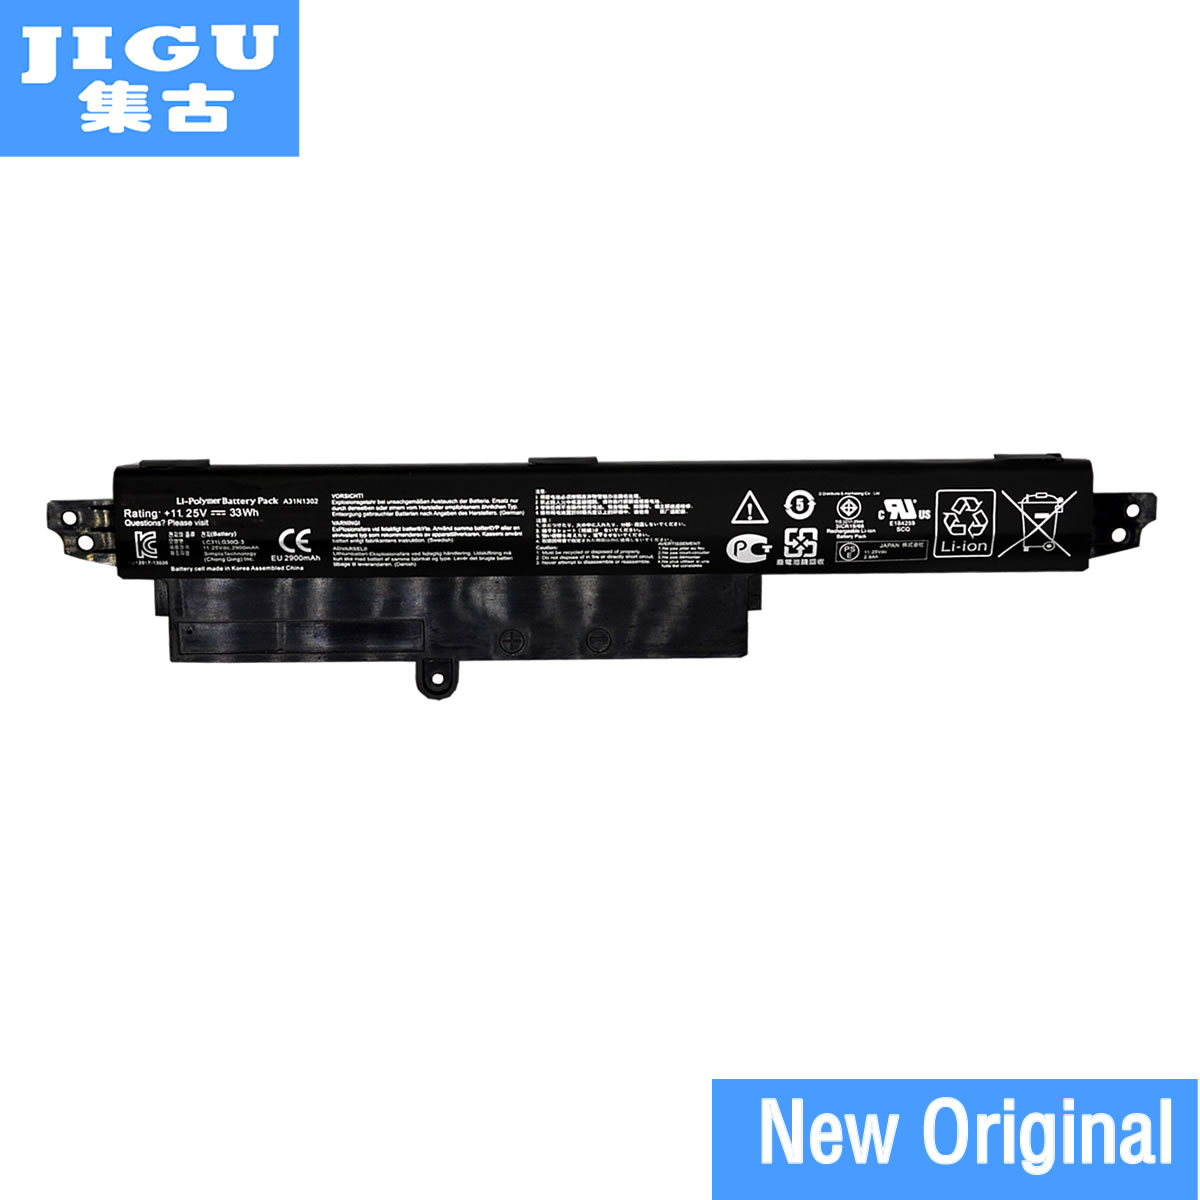 JIGU A31LM9H A31N1302 Original laptop Battery For <font><b>Asus</b></font> VivoBook F200CA <font><b>X200CA</b></font> 11.25V 33WH image